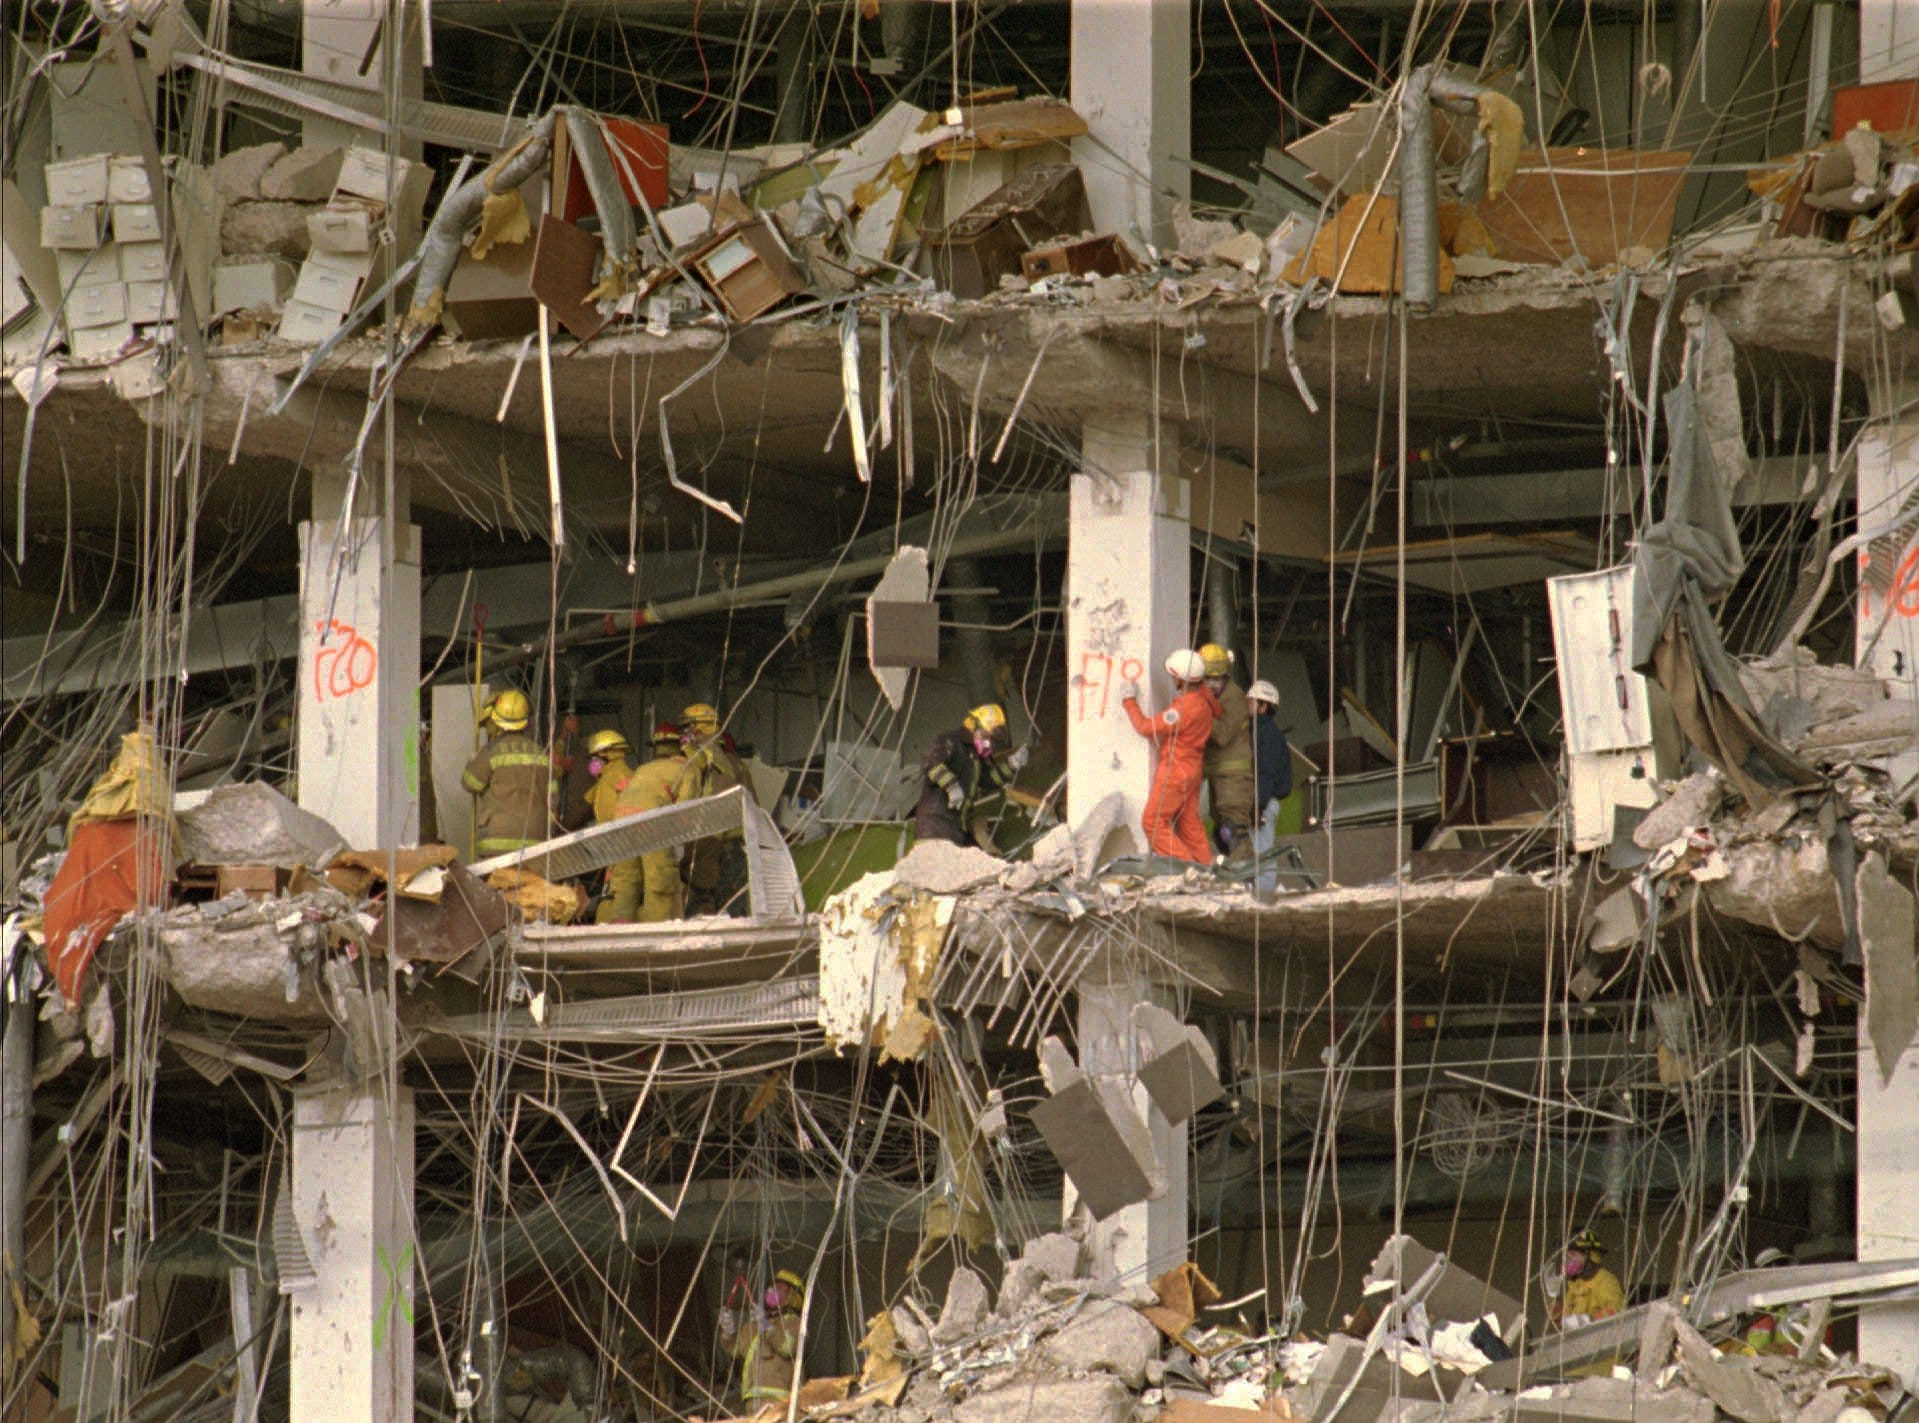 Rescue workers climb around the debris at the Alfred P. Murrah Federal Building searching for victims of the deadly truck-bomb blast in Oklahoma City in this April 23, 1995, file photo. Timothy McVeigh was found guilty in the Oklahoma City bombing that killed 168 people. He was executed May 16, 2001, at the U.S. Penitentiary in Terre Haute, Indiana.